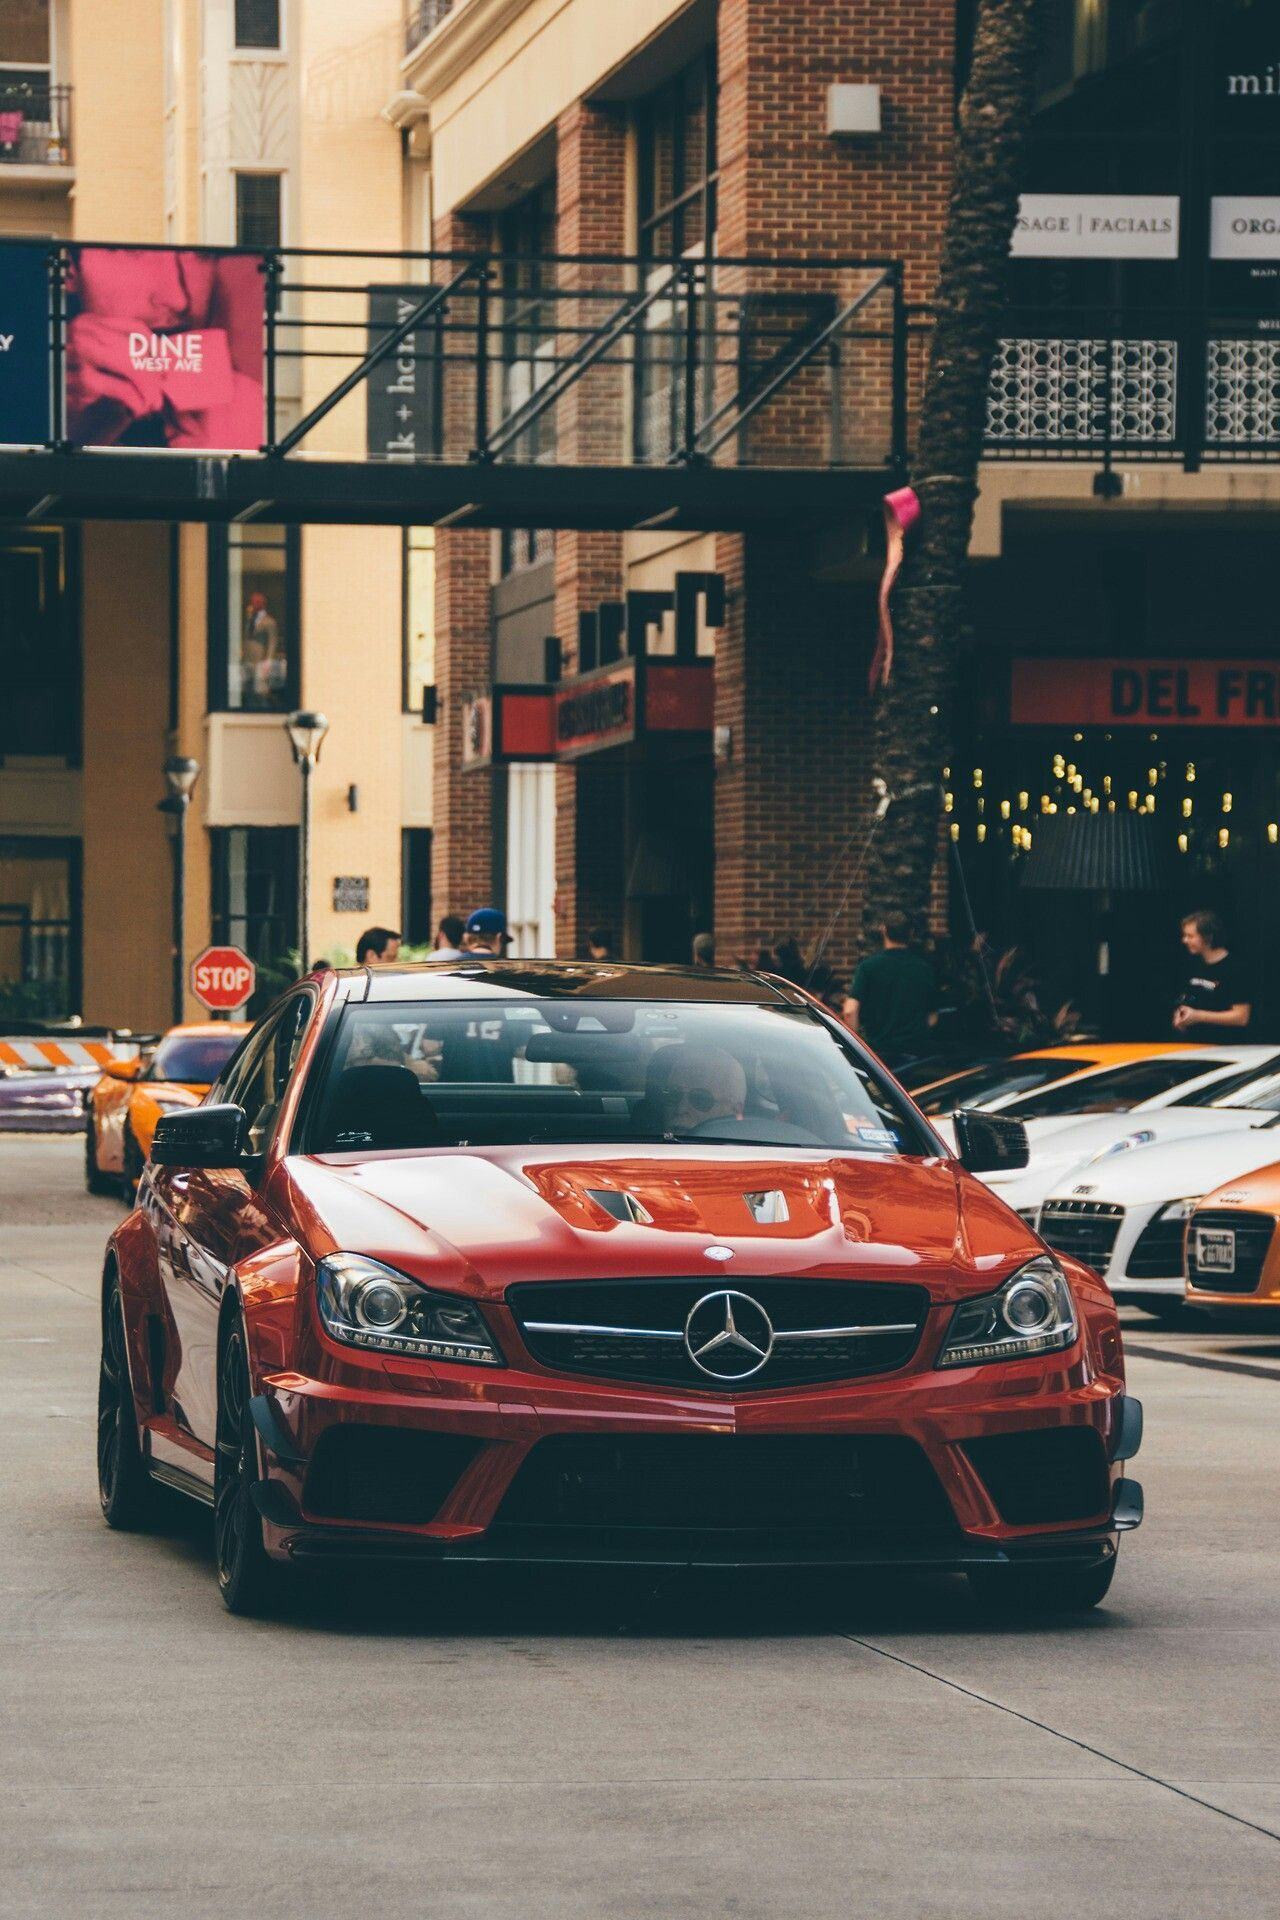 The Most Luxury Cars In The World With Best Photos Of Cars Luxury Cars Best Luxury Cars Super Cars